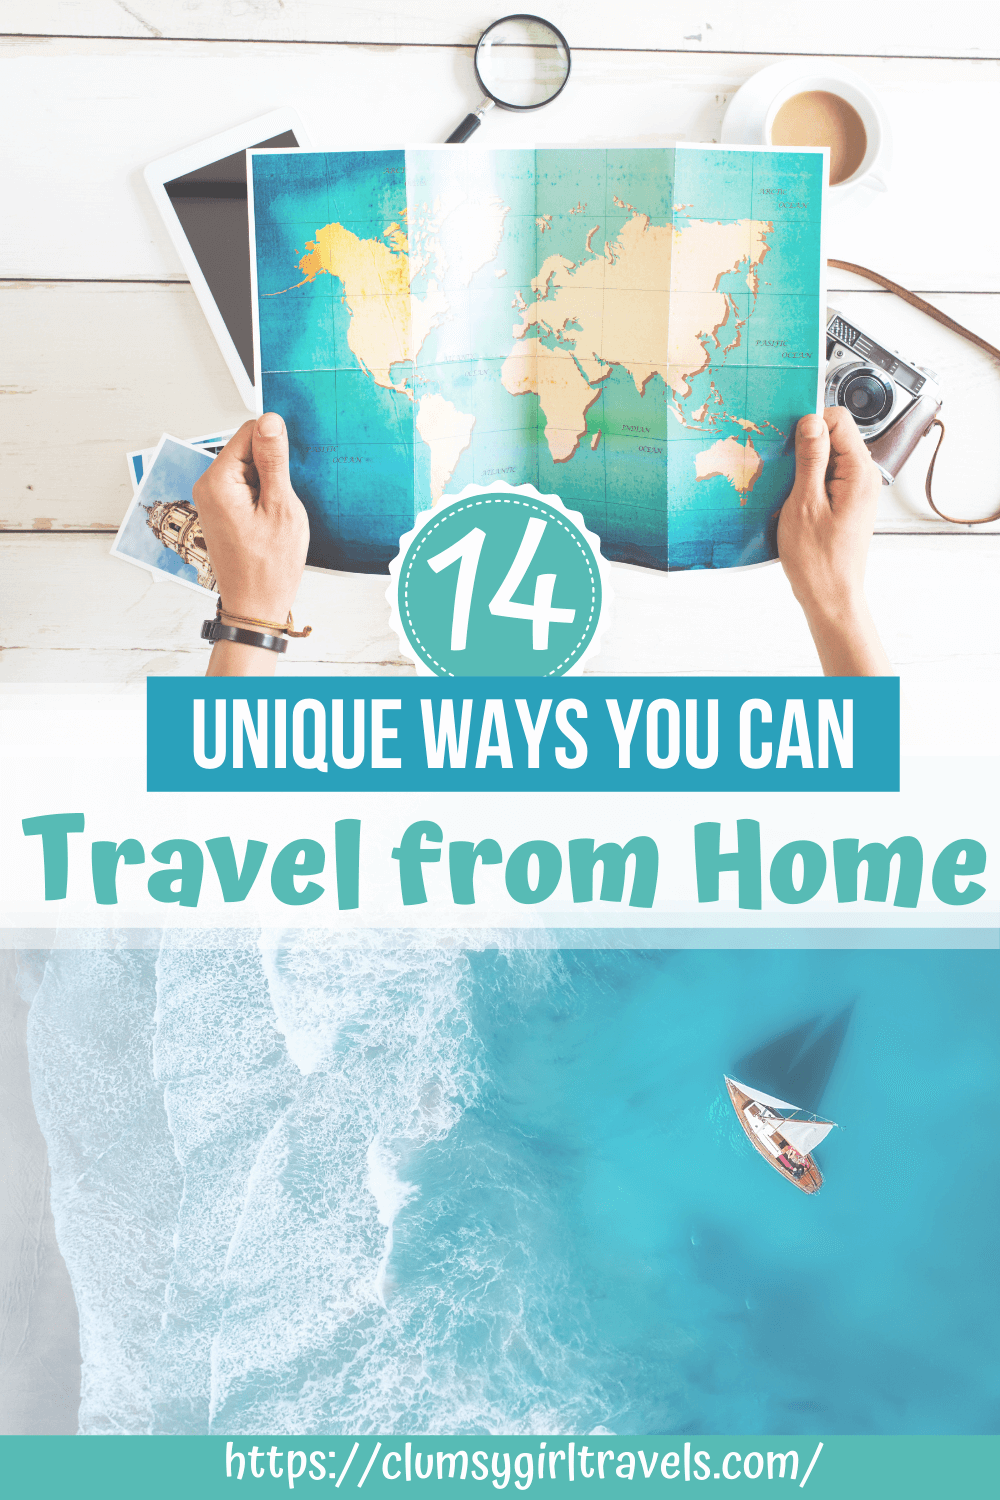 Are you stuck at home, but itching to go on vacation? Here are 14 unique ways you can travel from home. #travelfromhome #virtualtravel